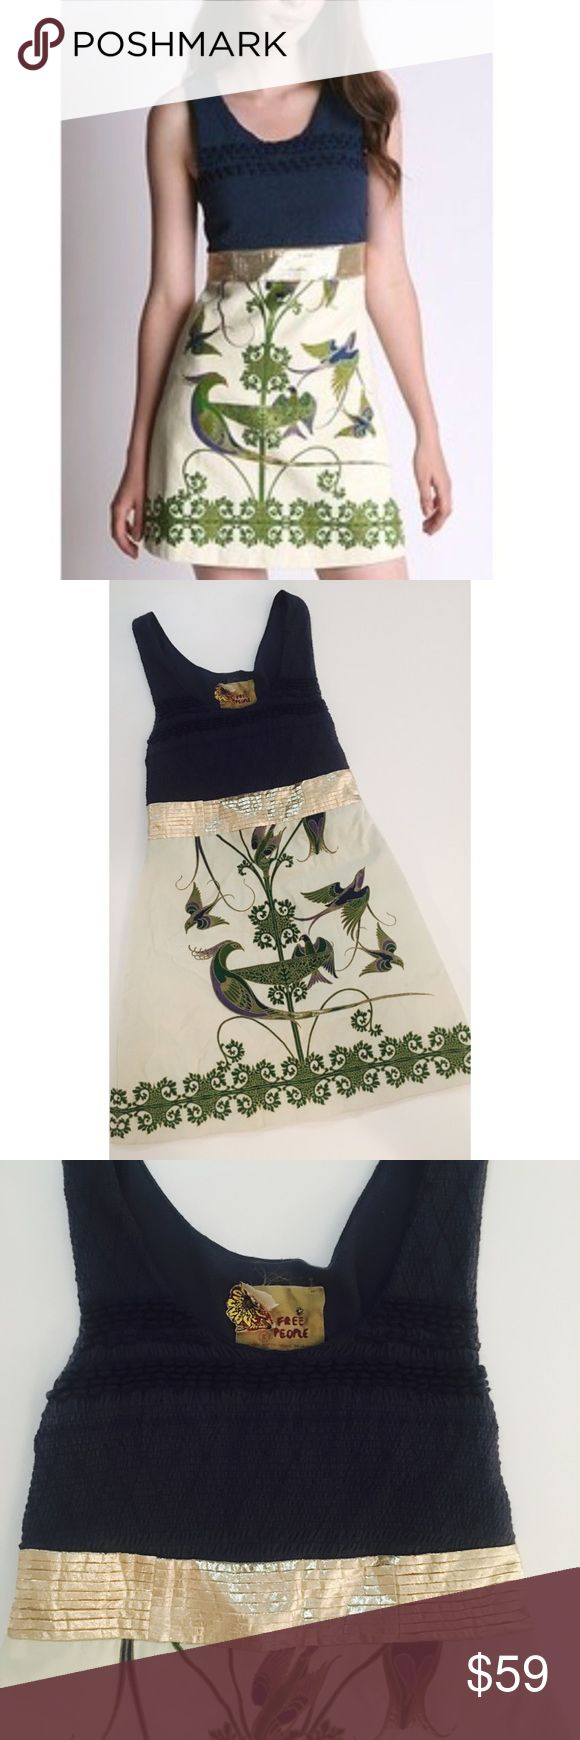 Free People Bird of Paradise Dress Size 8 Free People Bird of Paradise Dress. Ivory/Cream A-Line Dress with Navy Blue Smocked Top and Gold Metallic Center. Beautiful & Vibrant Ornate Bird Design with Rhinestone Embellishments. 100% Cotton. 33 inch length. Fabulous Pre-Loved Condition.   All items come from a smoke free home and are shipped on the same or following day an order is placed.   Items are shipped in polymailers placed INSIDE boxes to ensure all purchases are completely protected…